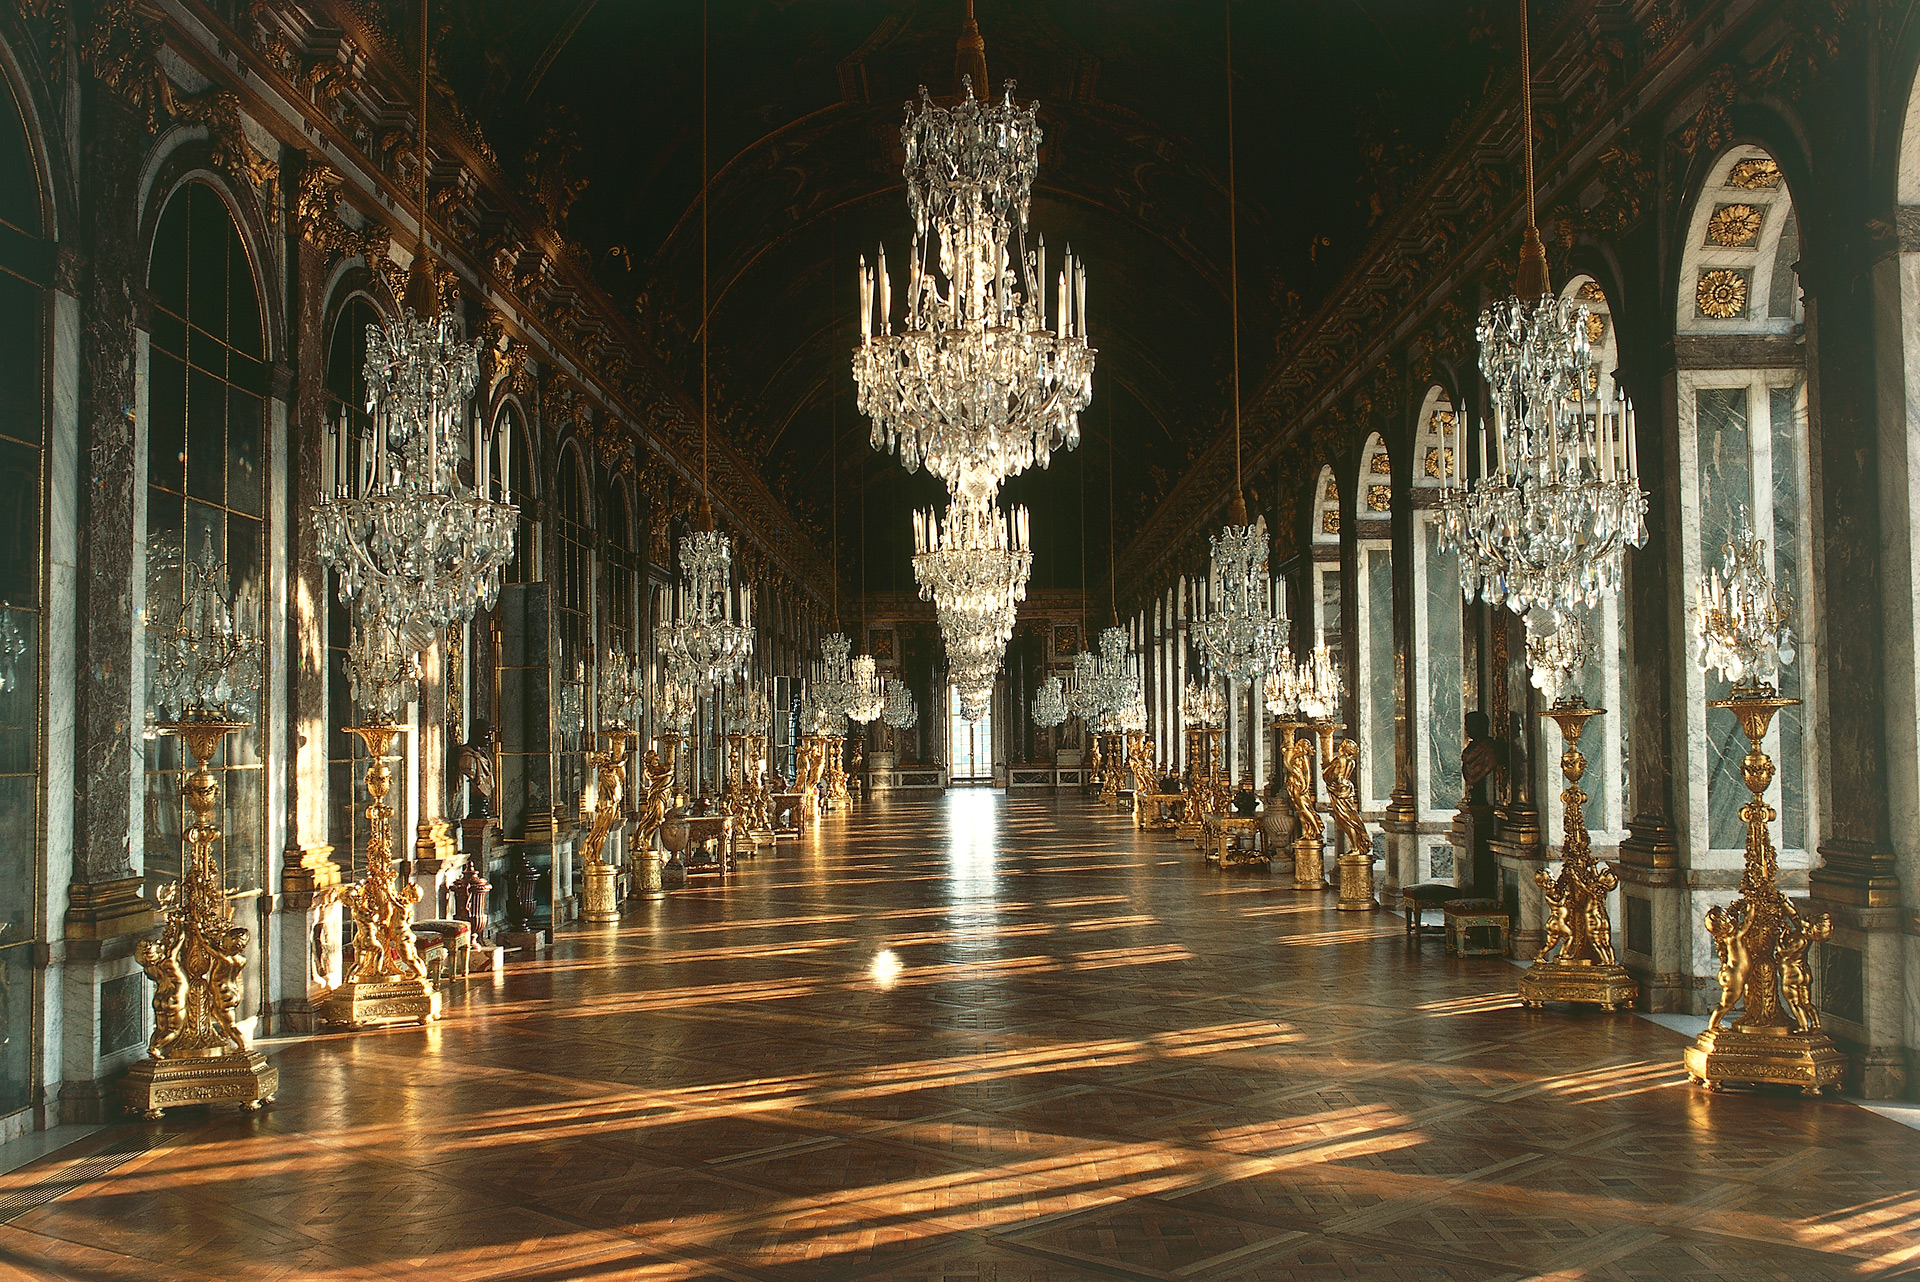 Reel to real film series battle at versailles for Salon versailles 2016